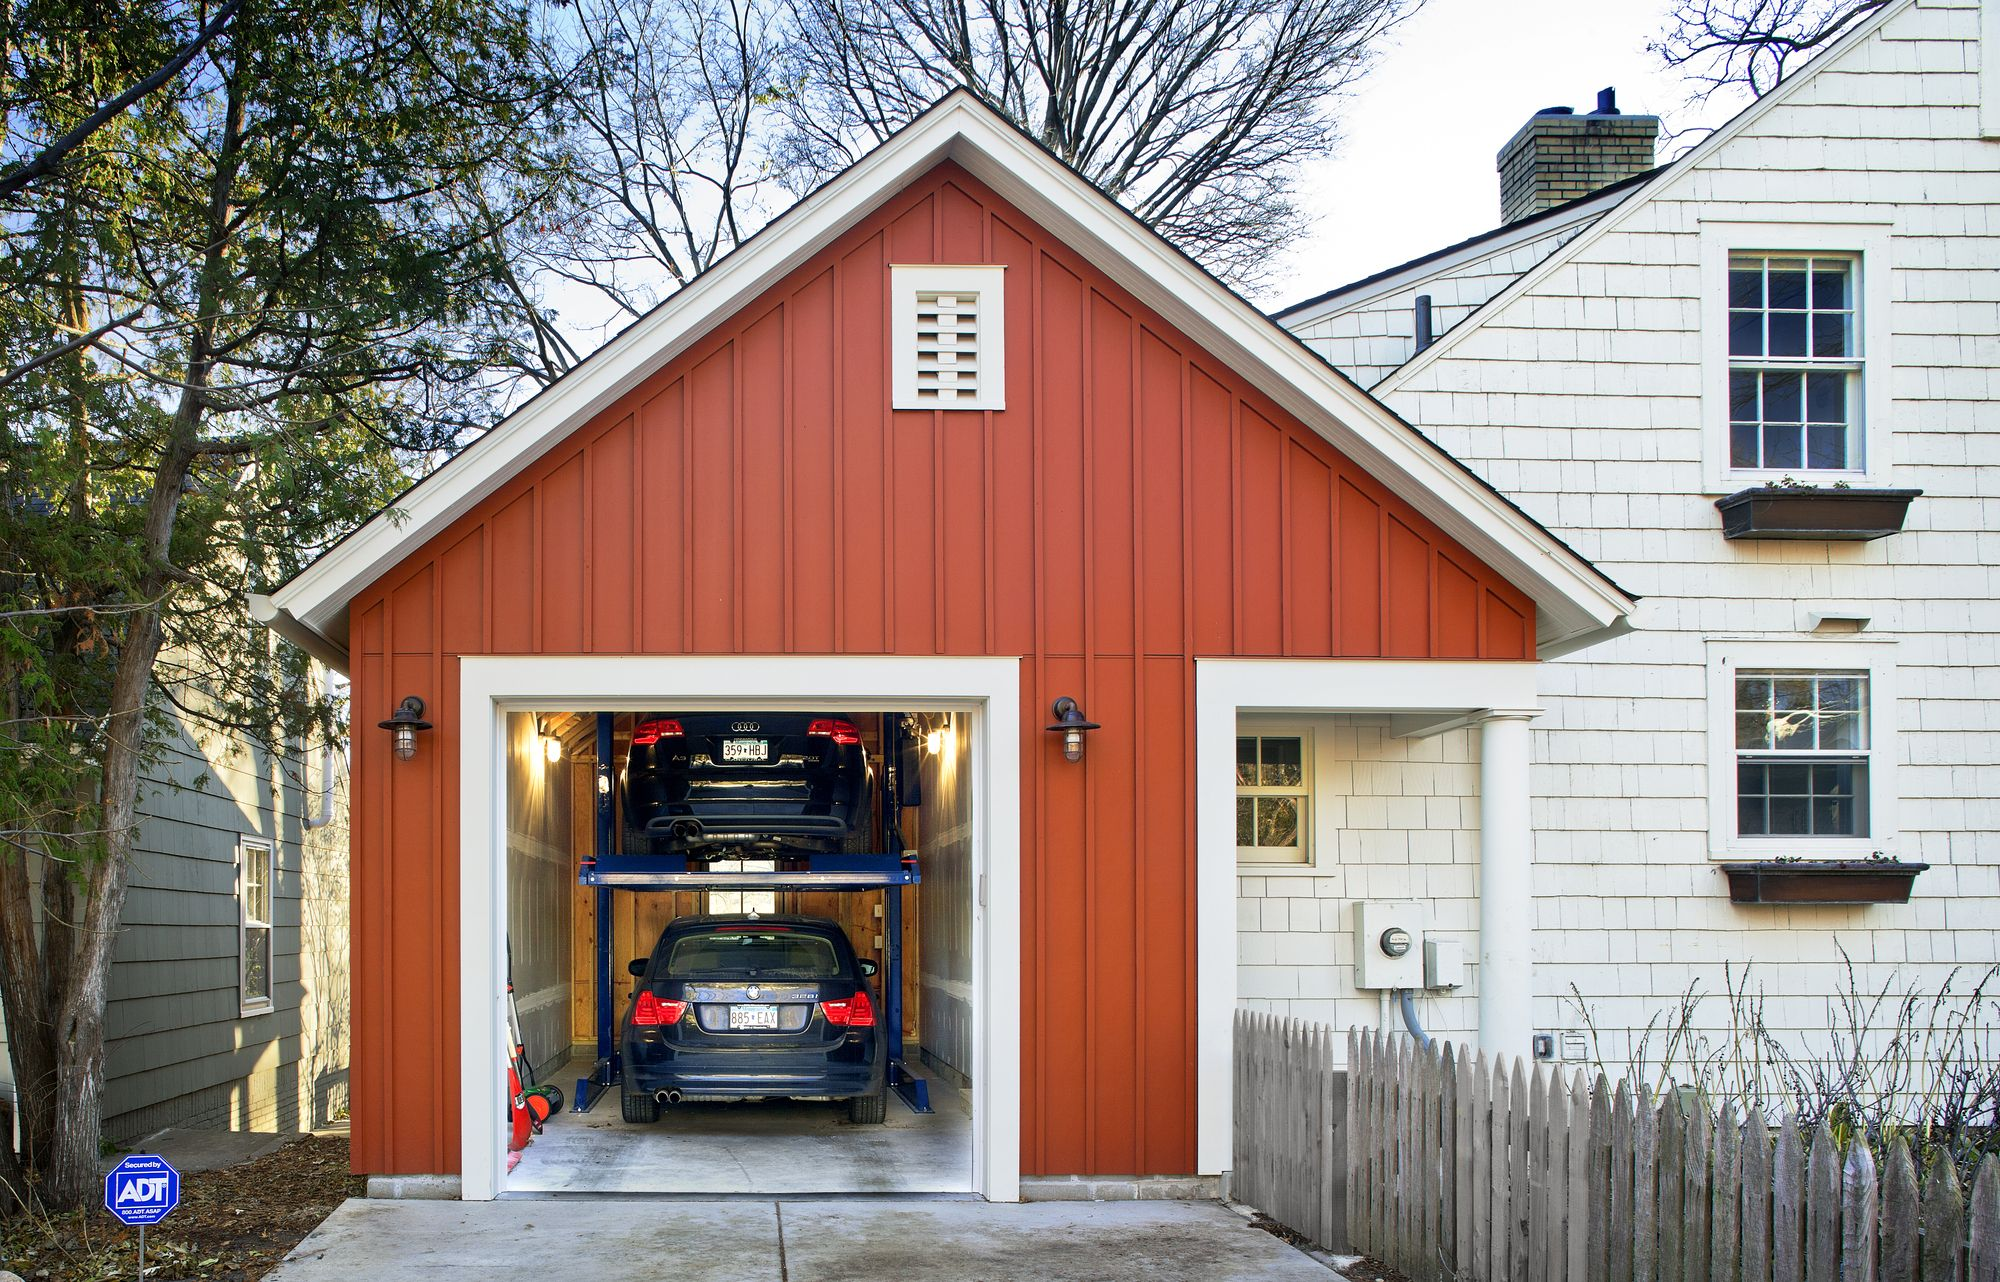 Everyday Solutions Garage Is Built Up Instead Of Out Detached Garage Designs Garage Design Car Garage